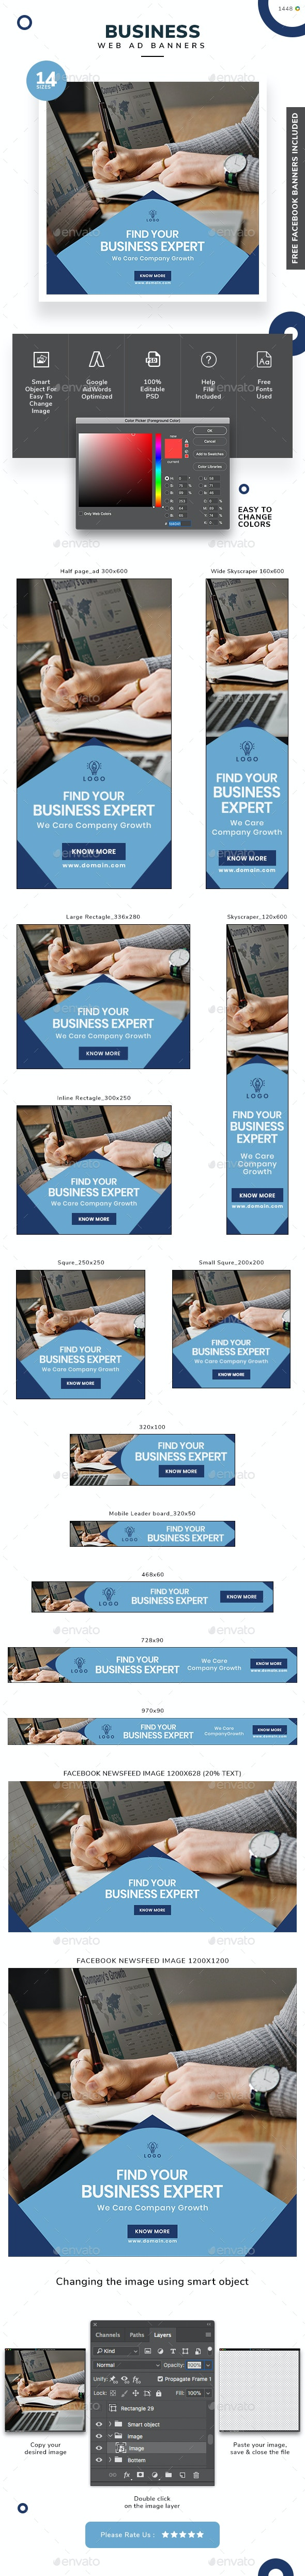 Business Banner Set - Banners & Ads Web Elements